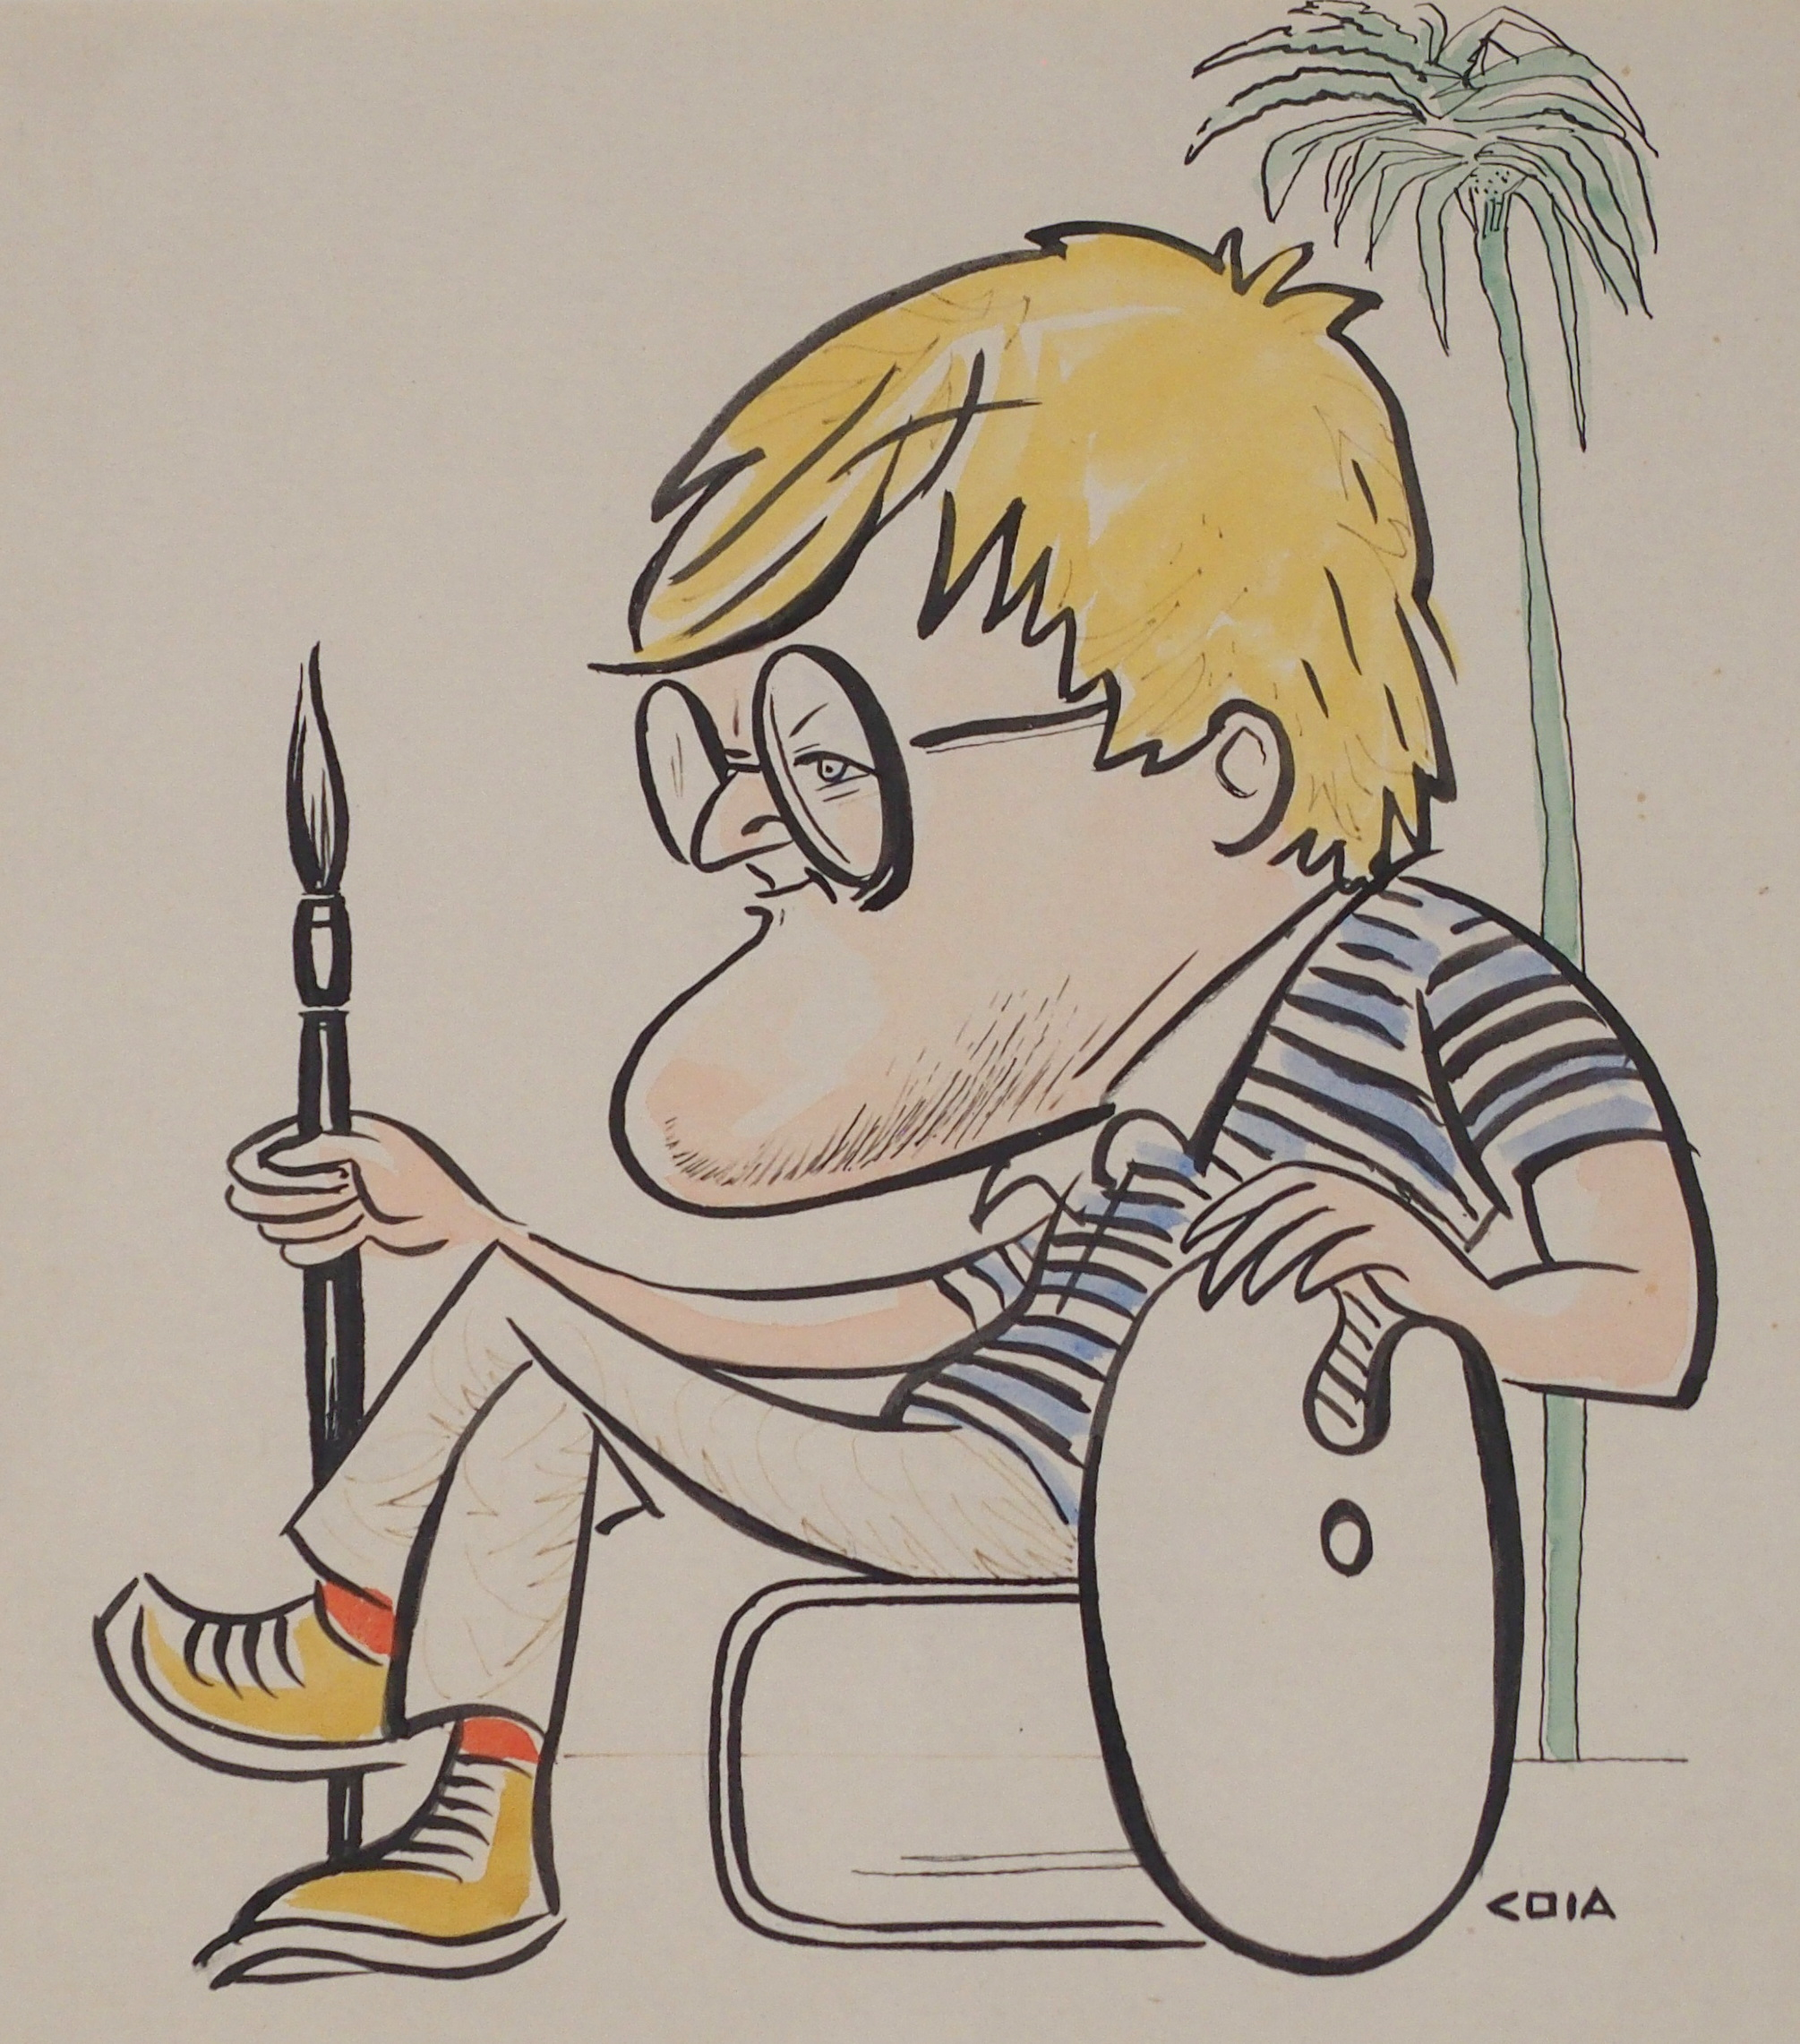 •EMILIO COIA FRSE, LLD (SCOTTISH 1911-1997) PORTRAIT OF DAVID HOCKNEY ink and watercolour, signed,